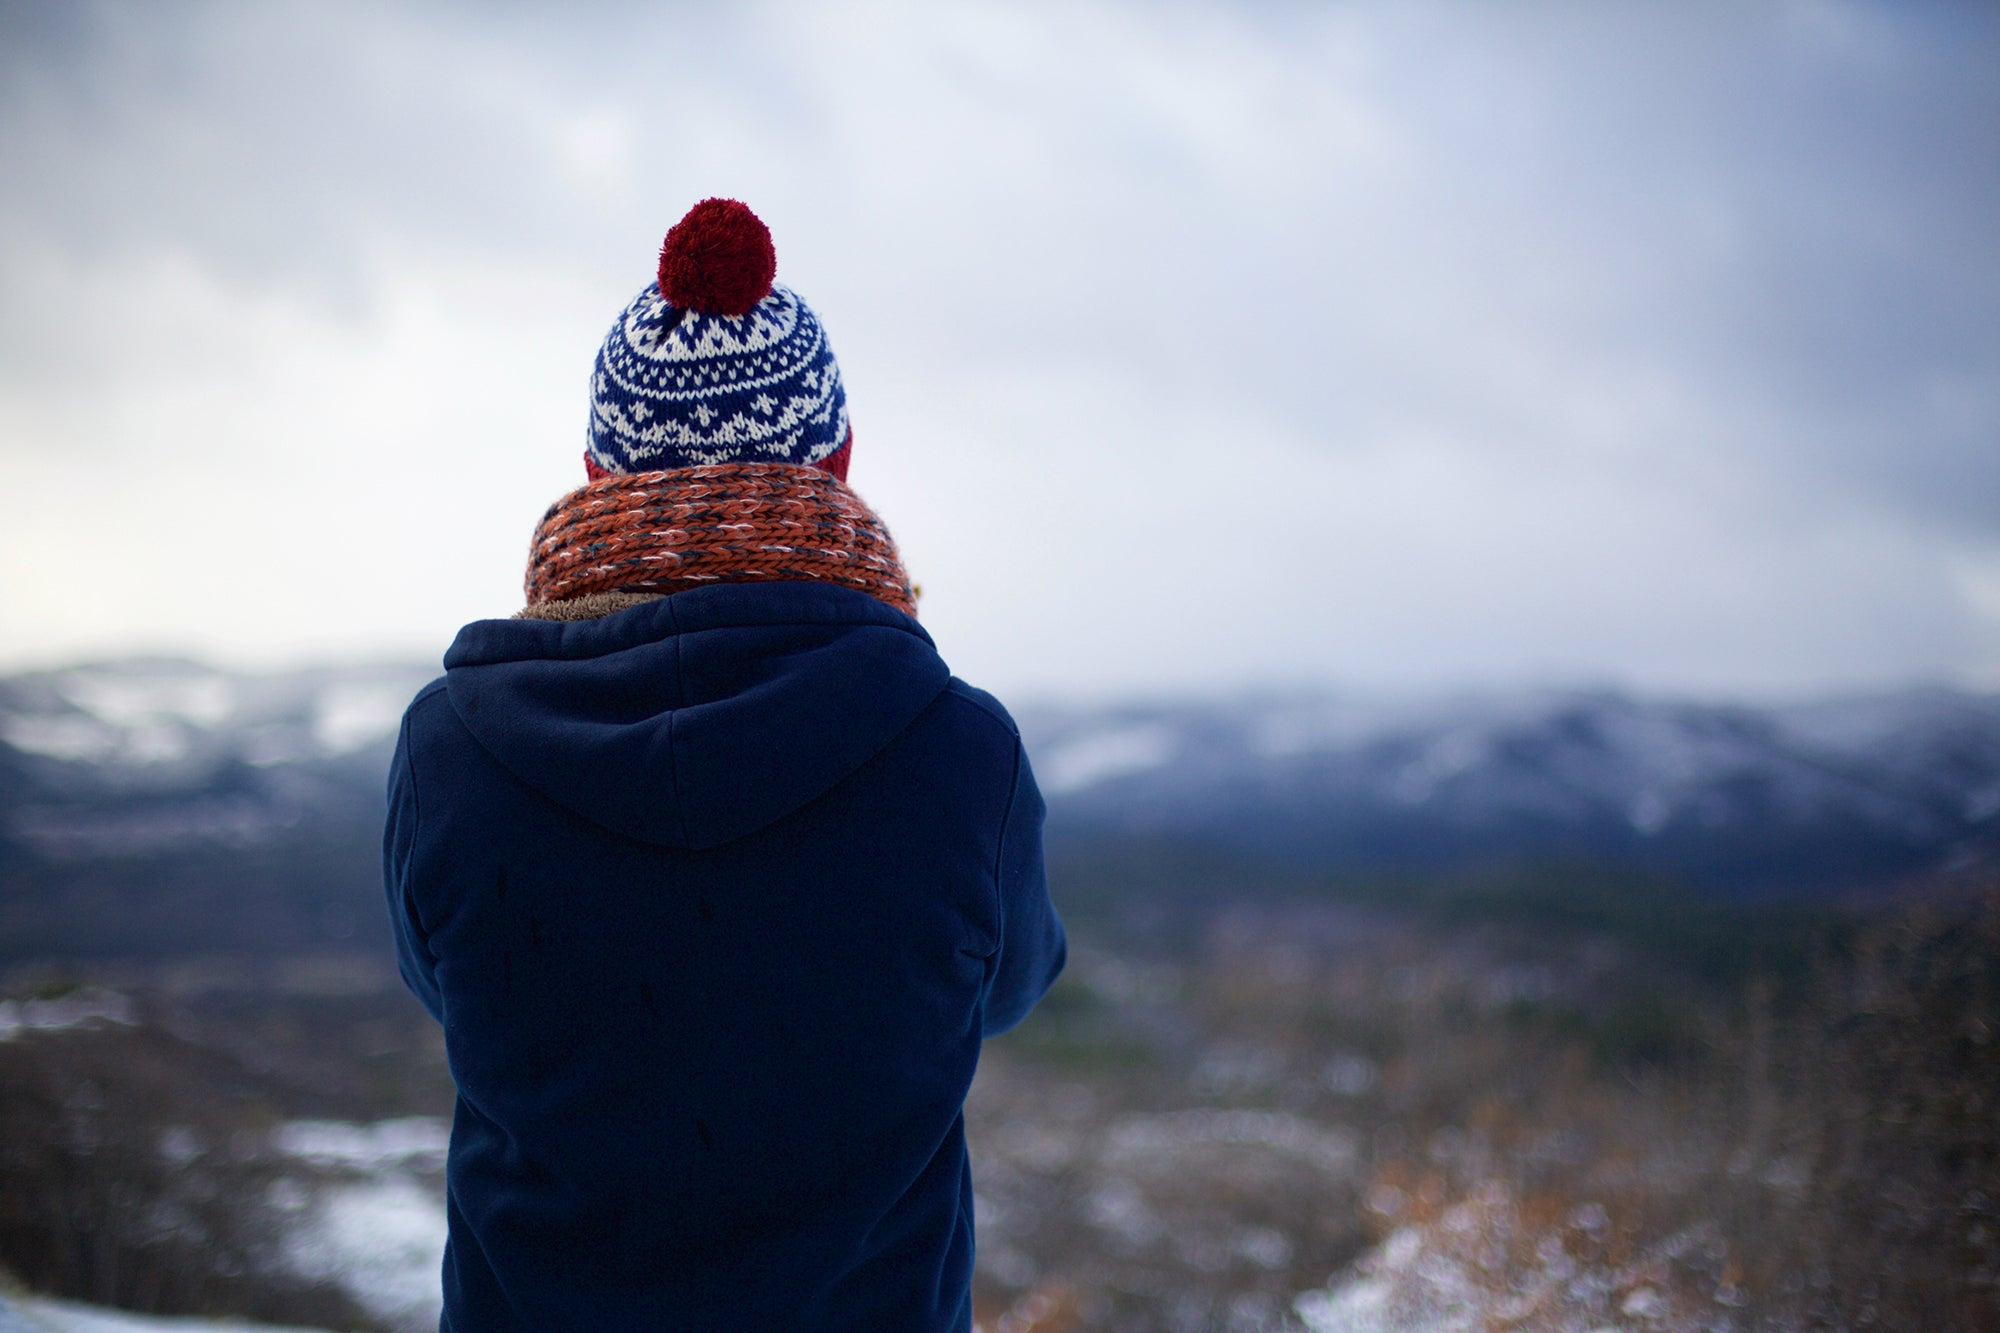 person with a winter hat and scarf looking out at a mountain